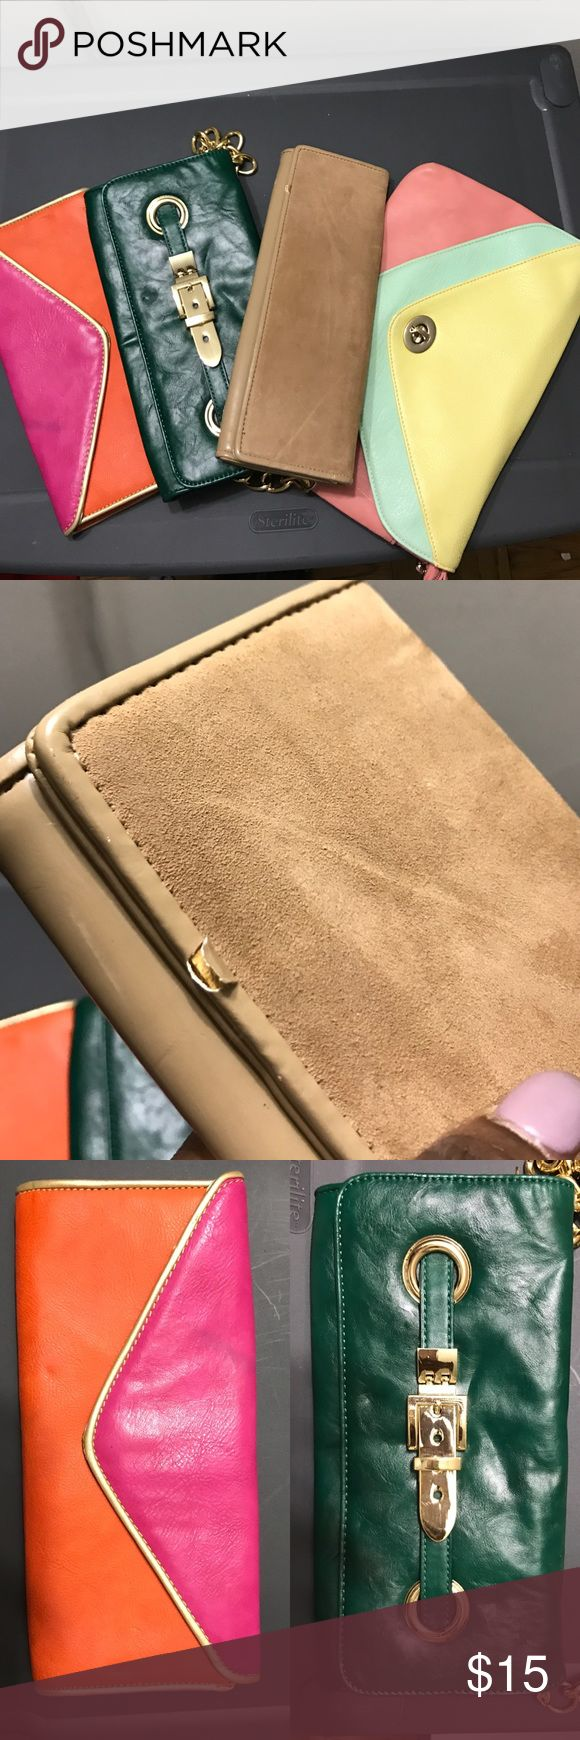 BUNDLE: 4 colorful clutches (By Aldo & Big Buddha) 4 clutch bags: pastel, nude and green bags are from Aldo; pink/orange bag by Big Buddha. Nude clutch has small scrape (see pic) all others are in very good condition. If interested, make an offer :-) Aldo Bags Clutches & Wristlets